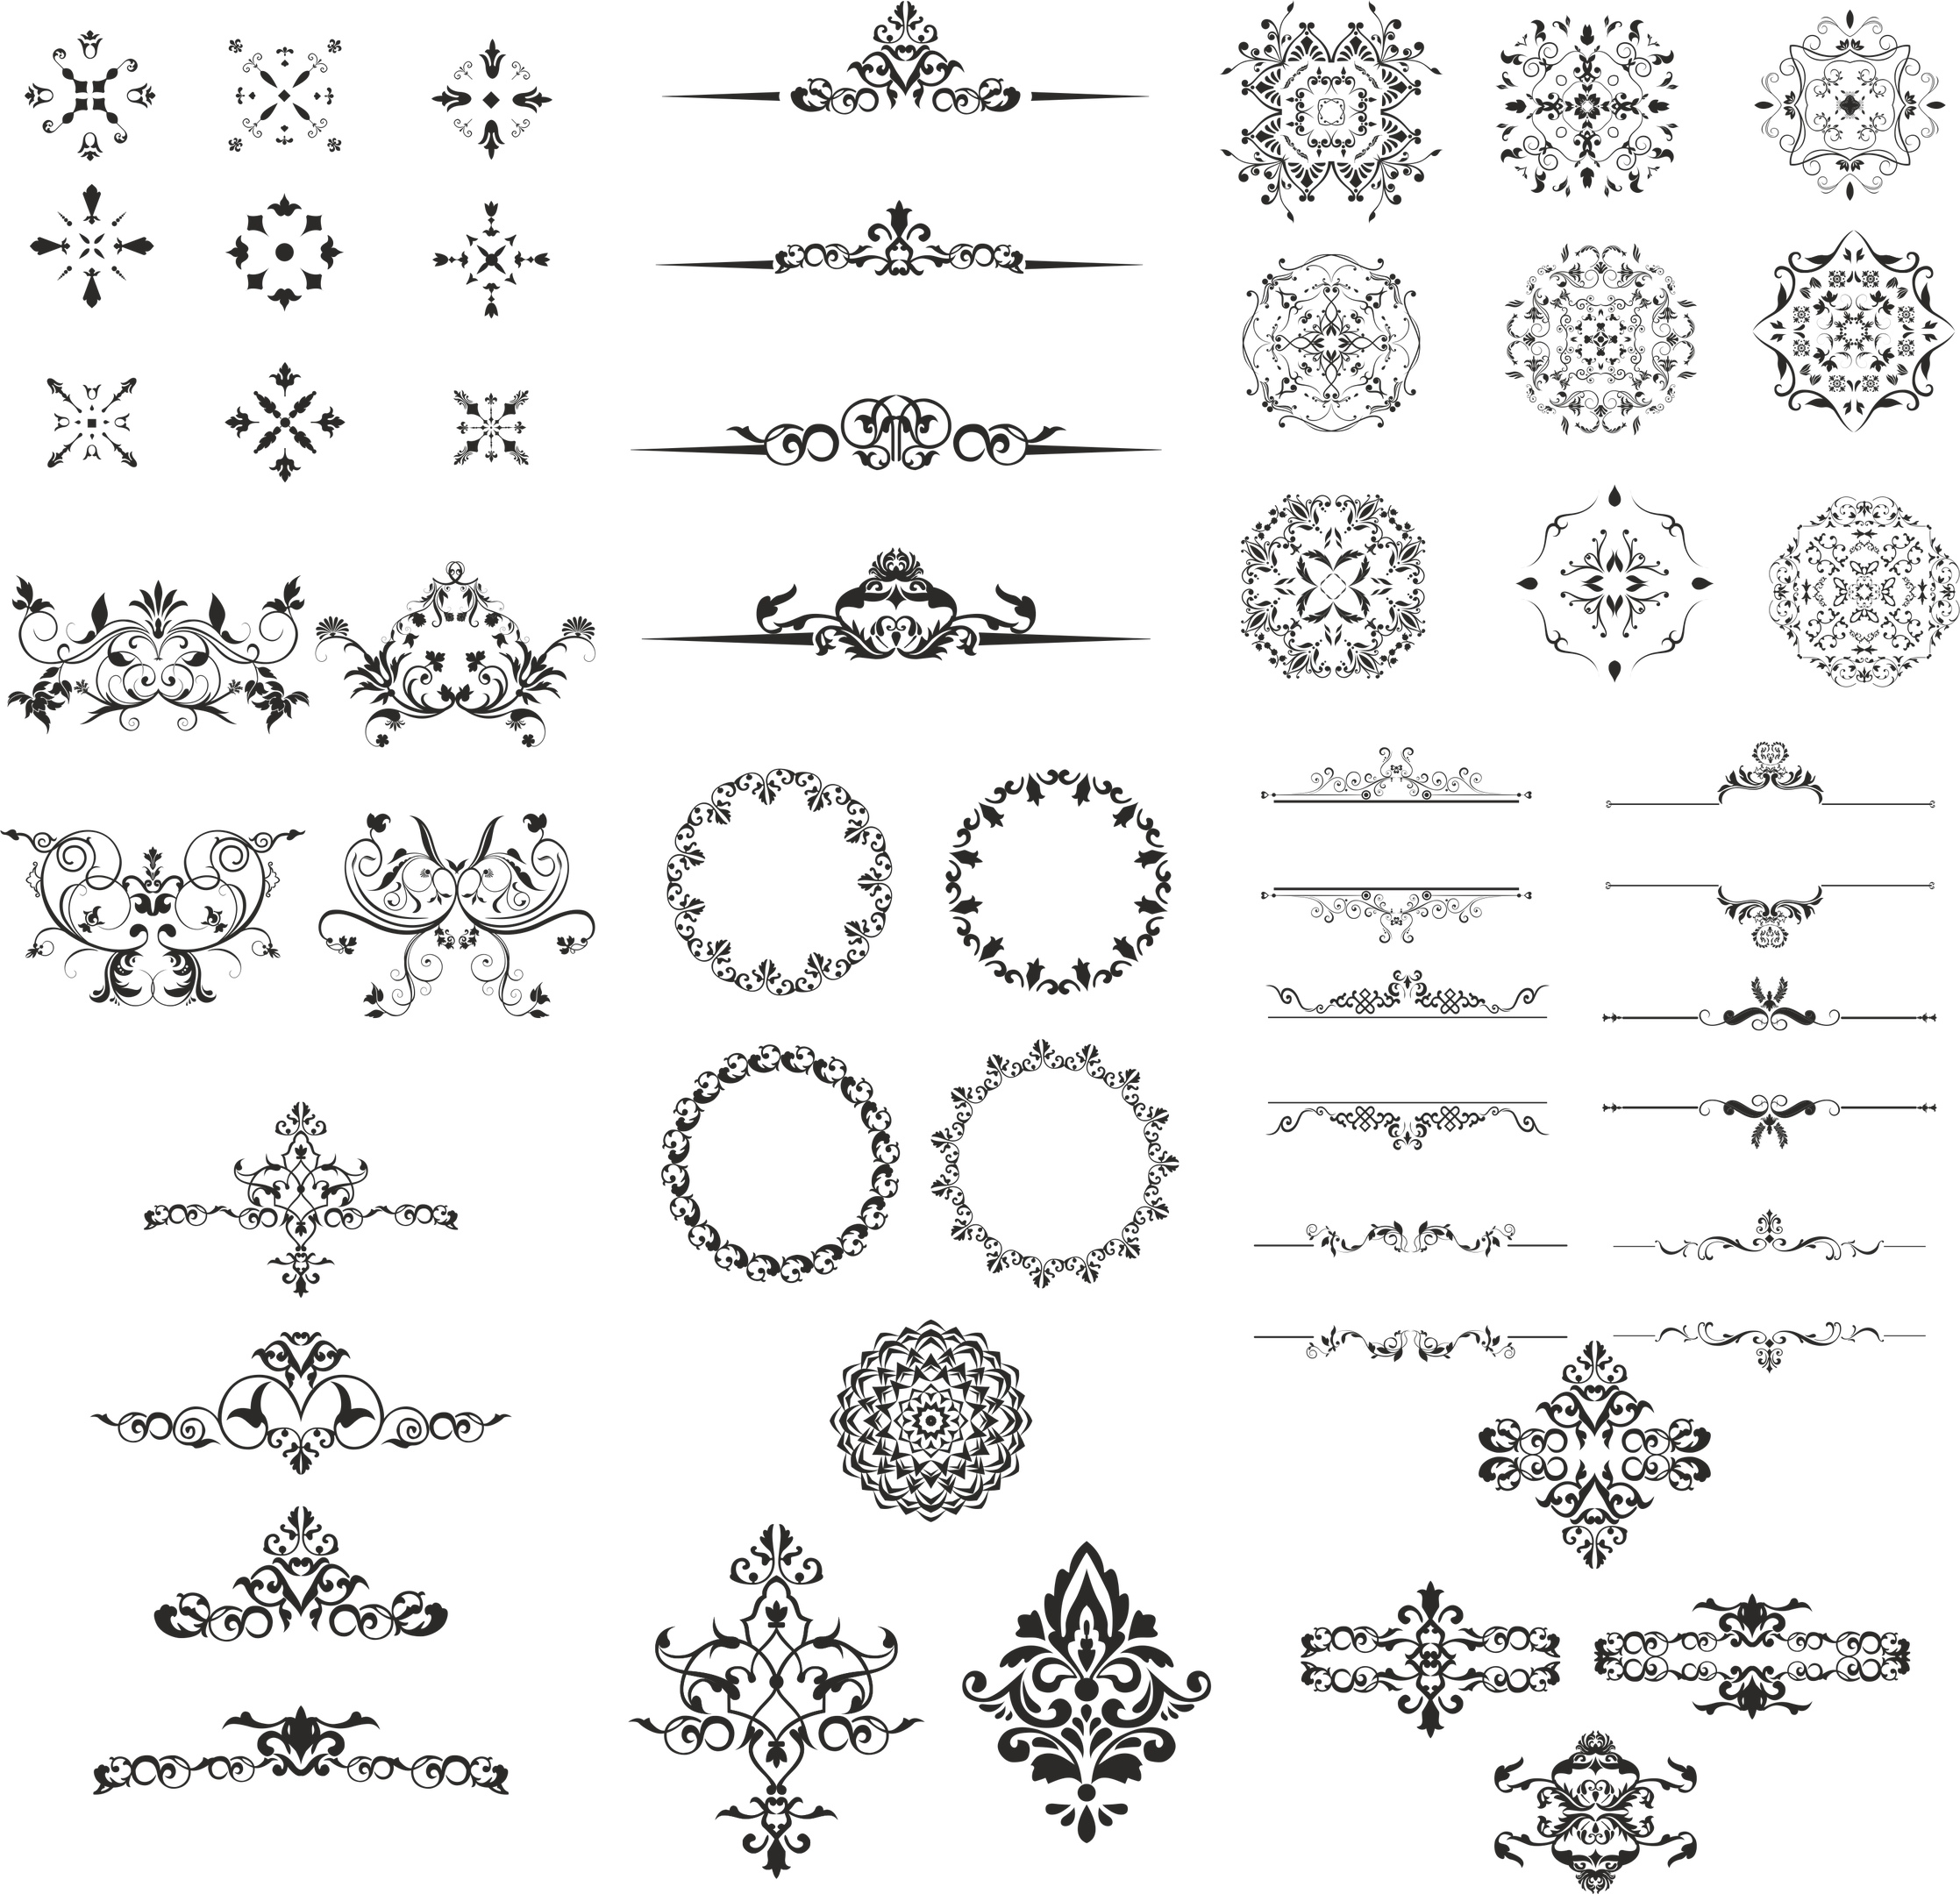 Ornamental Elements Design Kit Free Vector